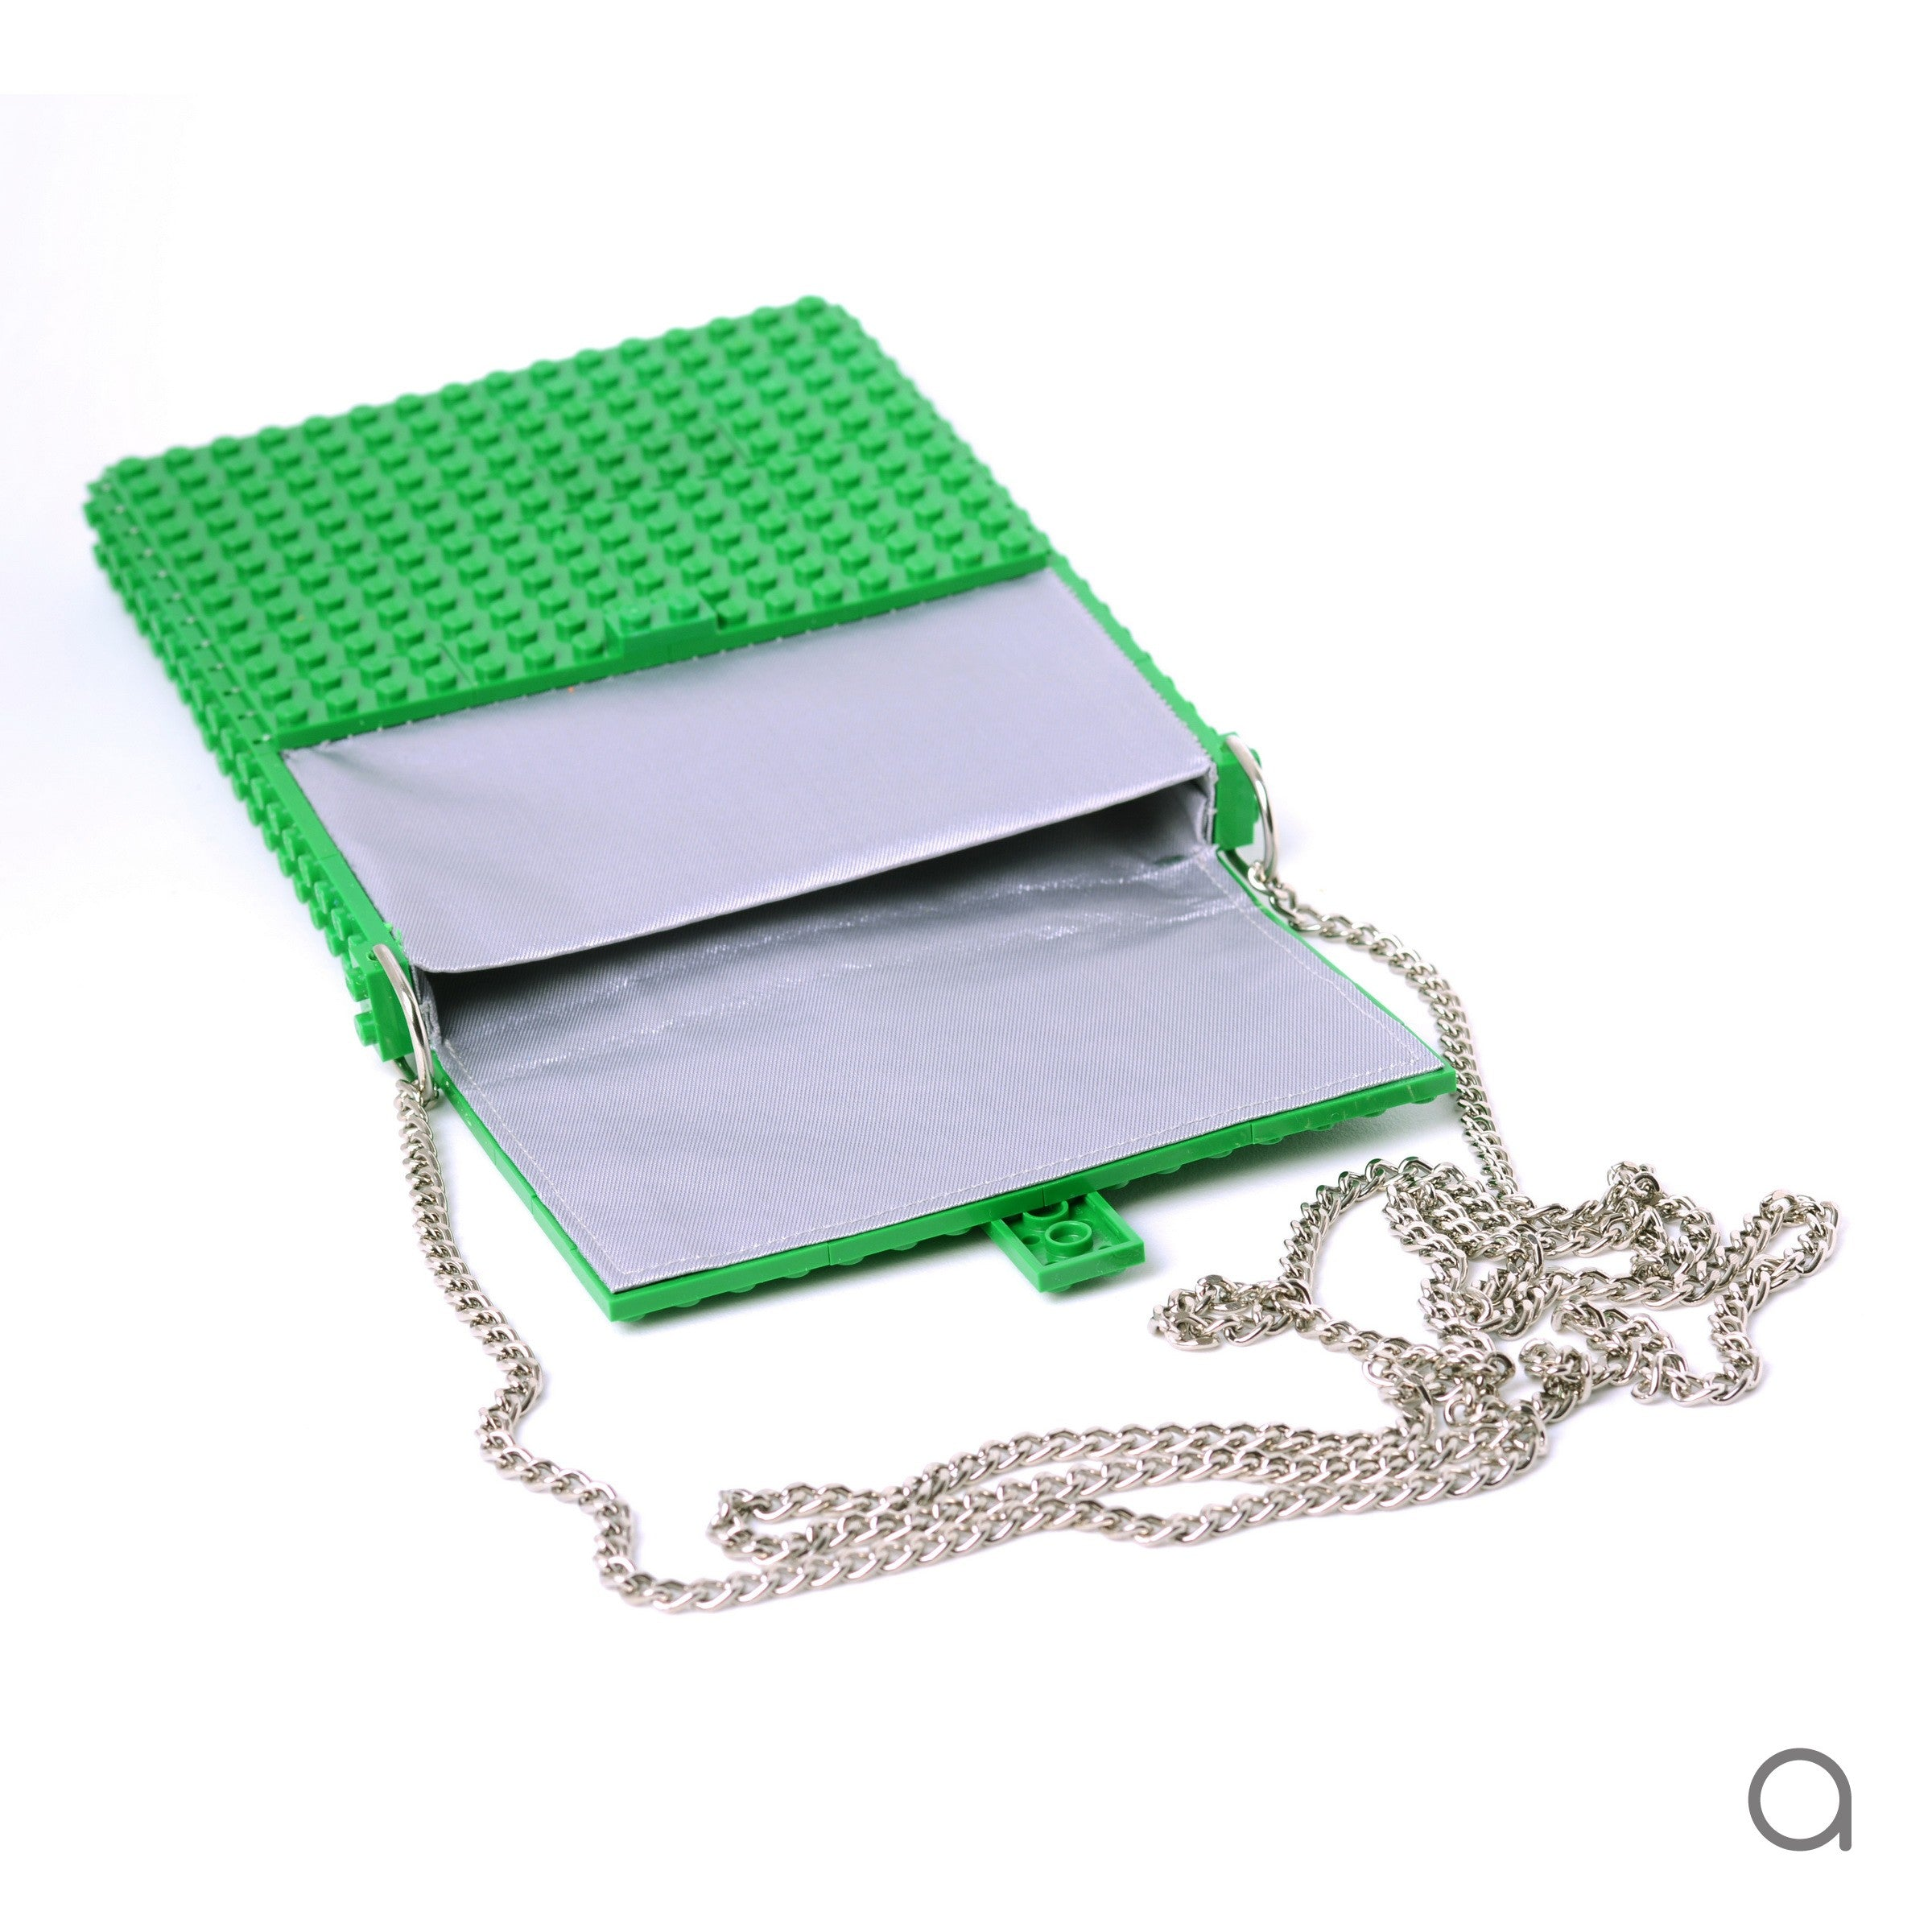 Green hip clutch on a chain